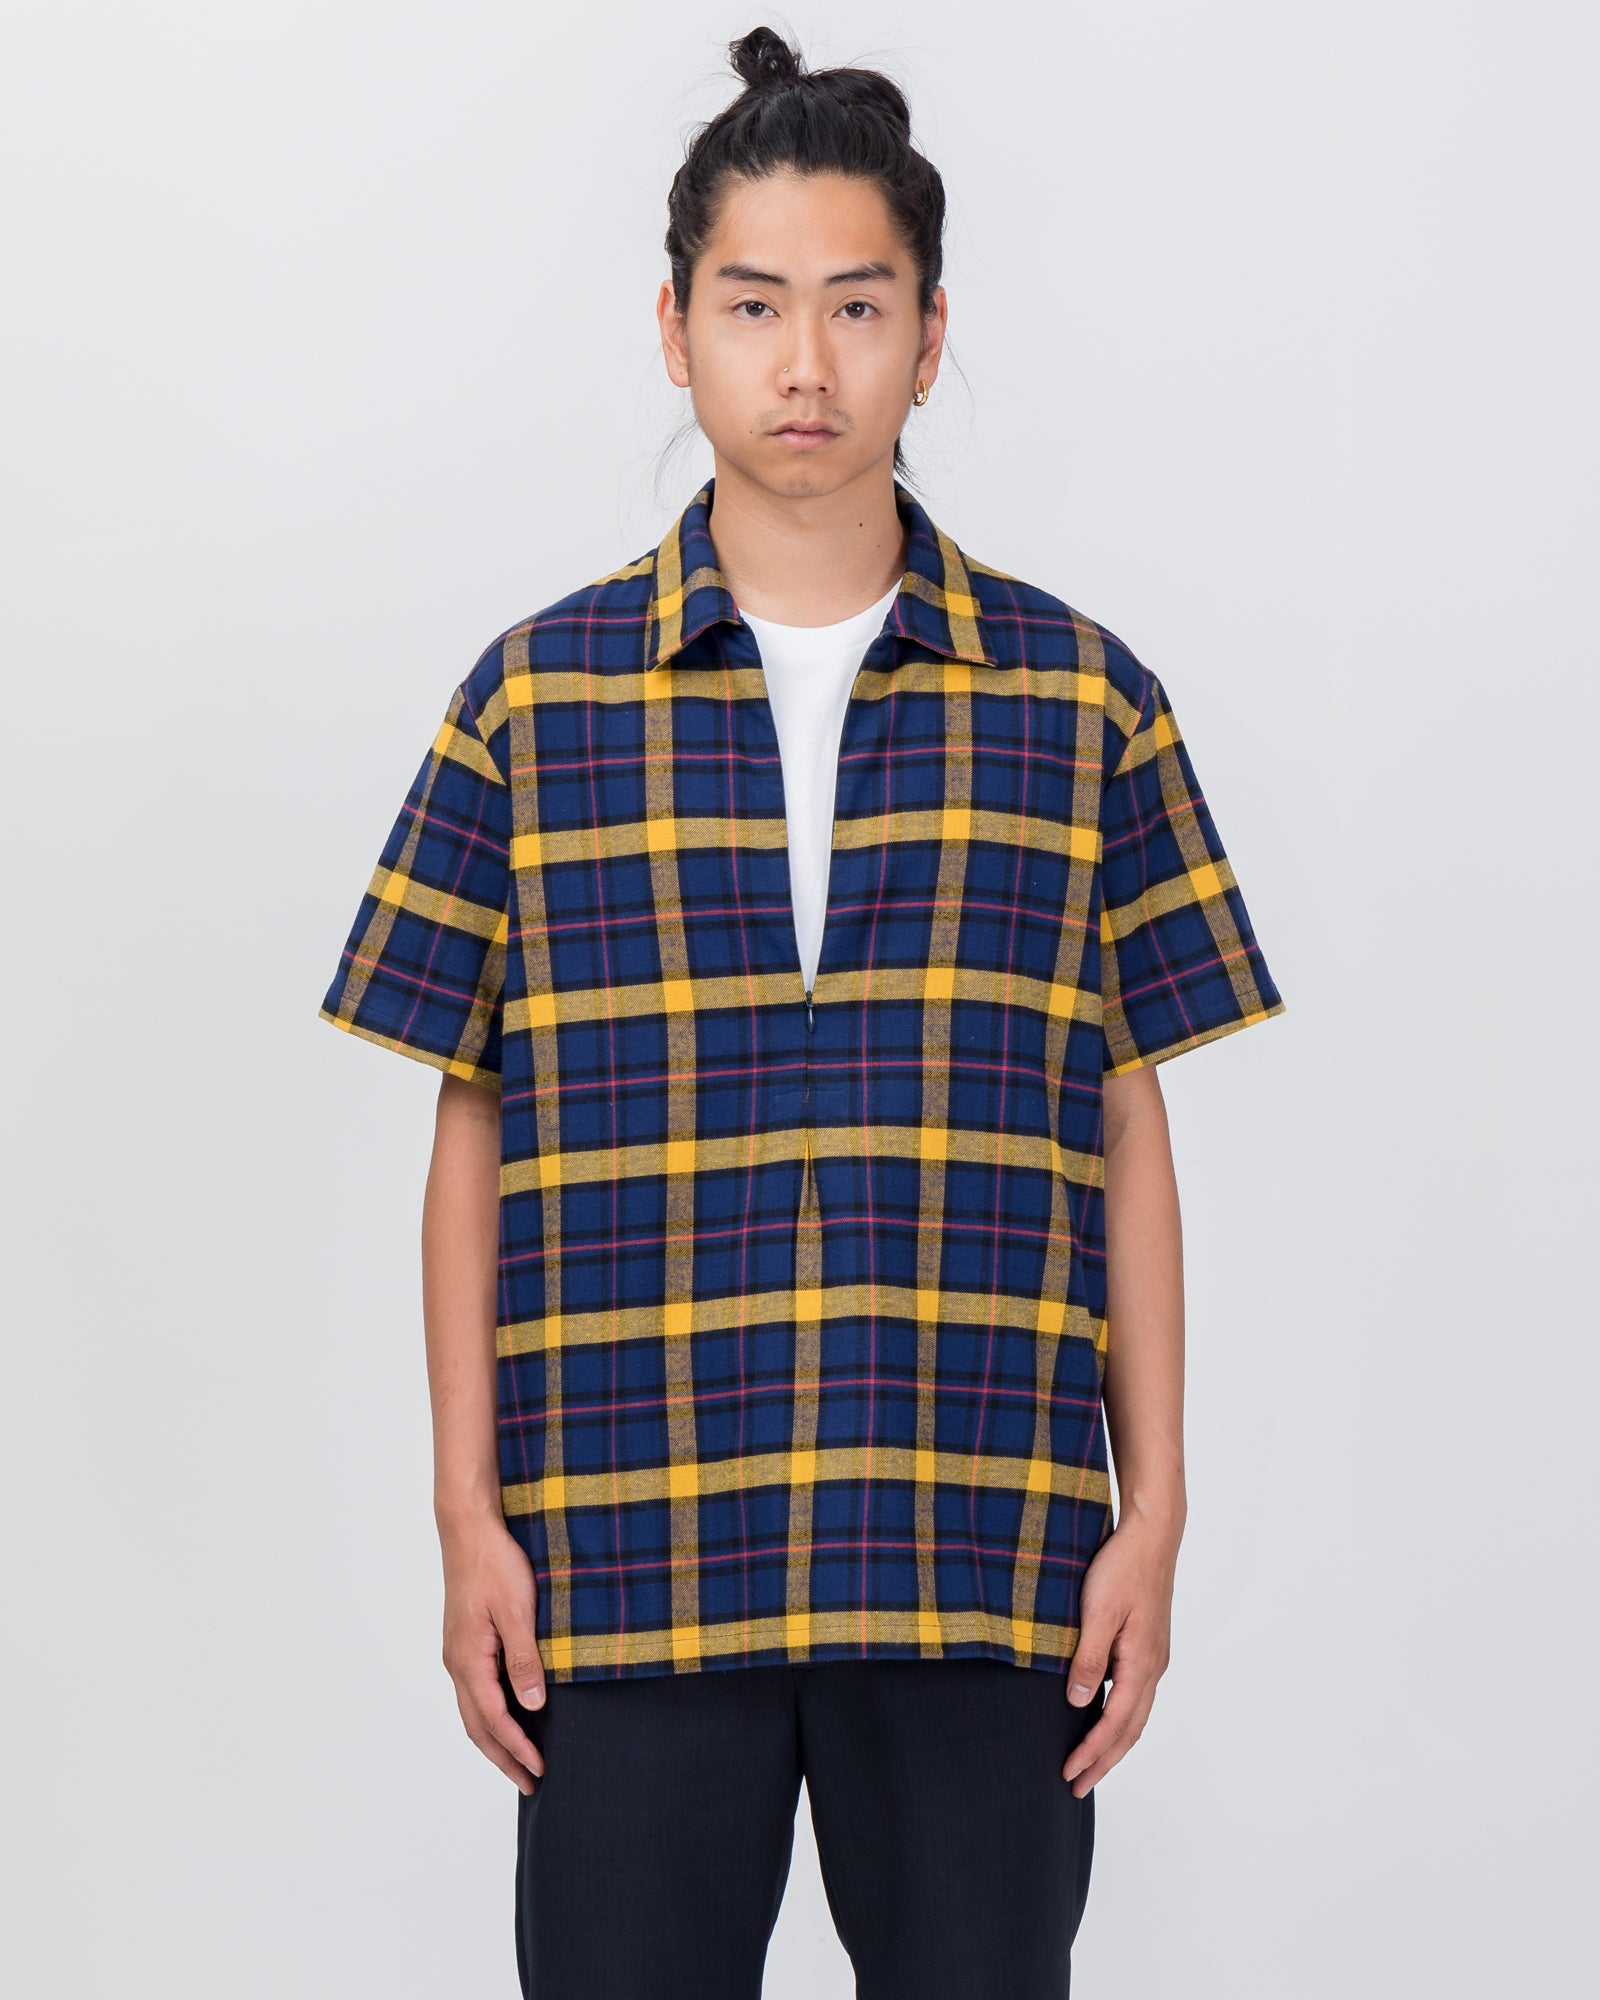 Slicker Zippered Polo in Blue Plaid | Goodfight